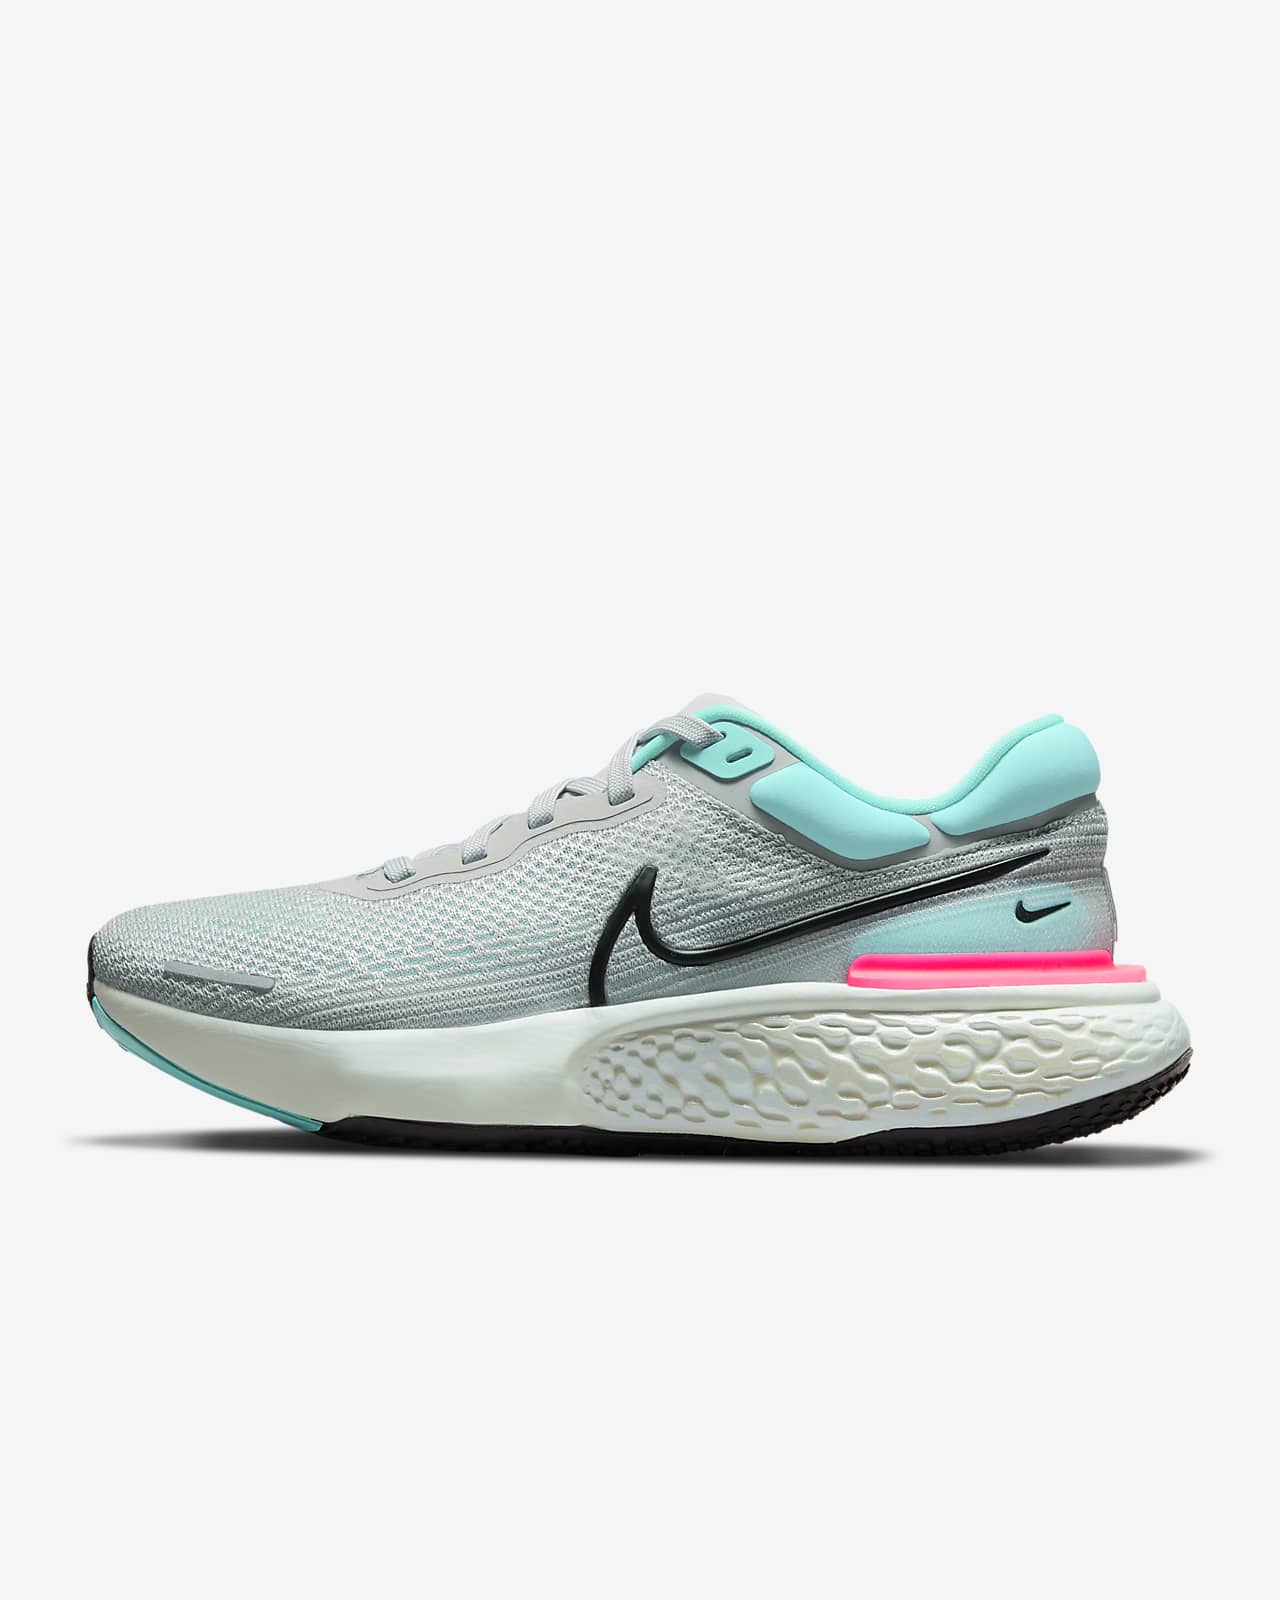 Chaussures de running Nike ZoomX Invincible Run Flyknit pour Homme